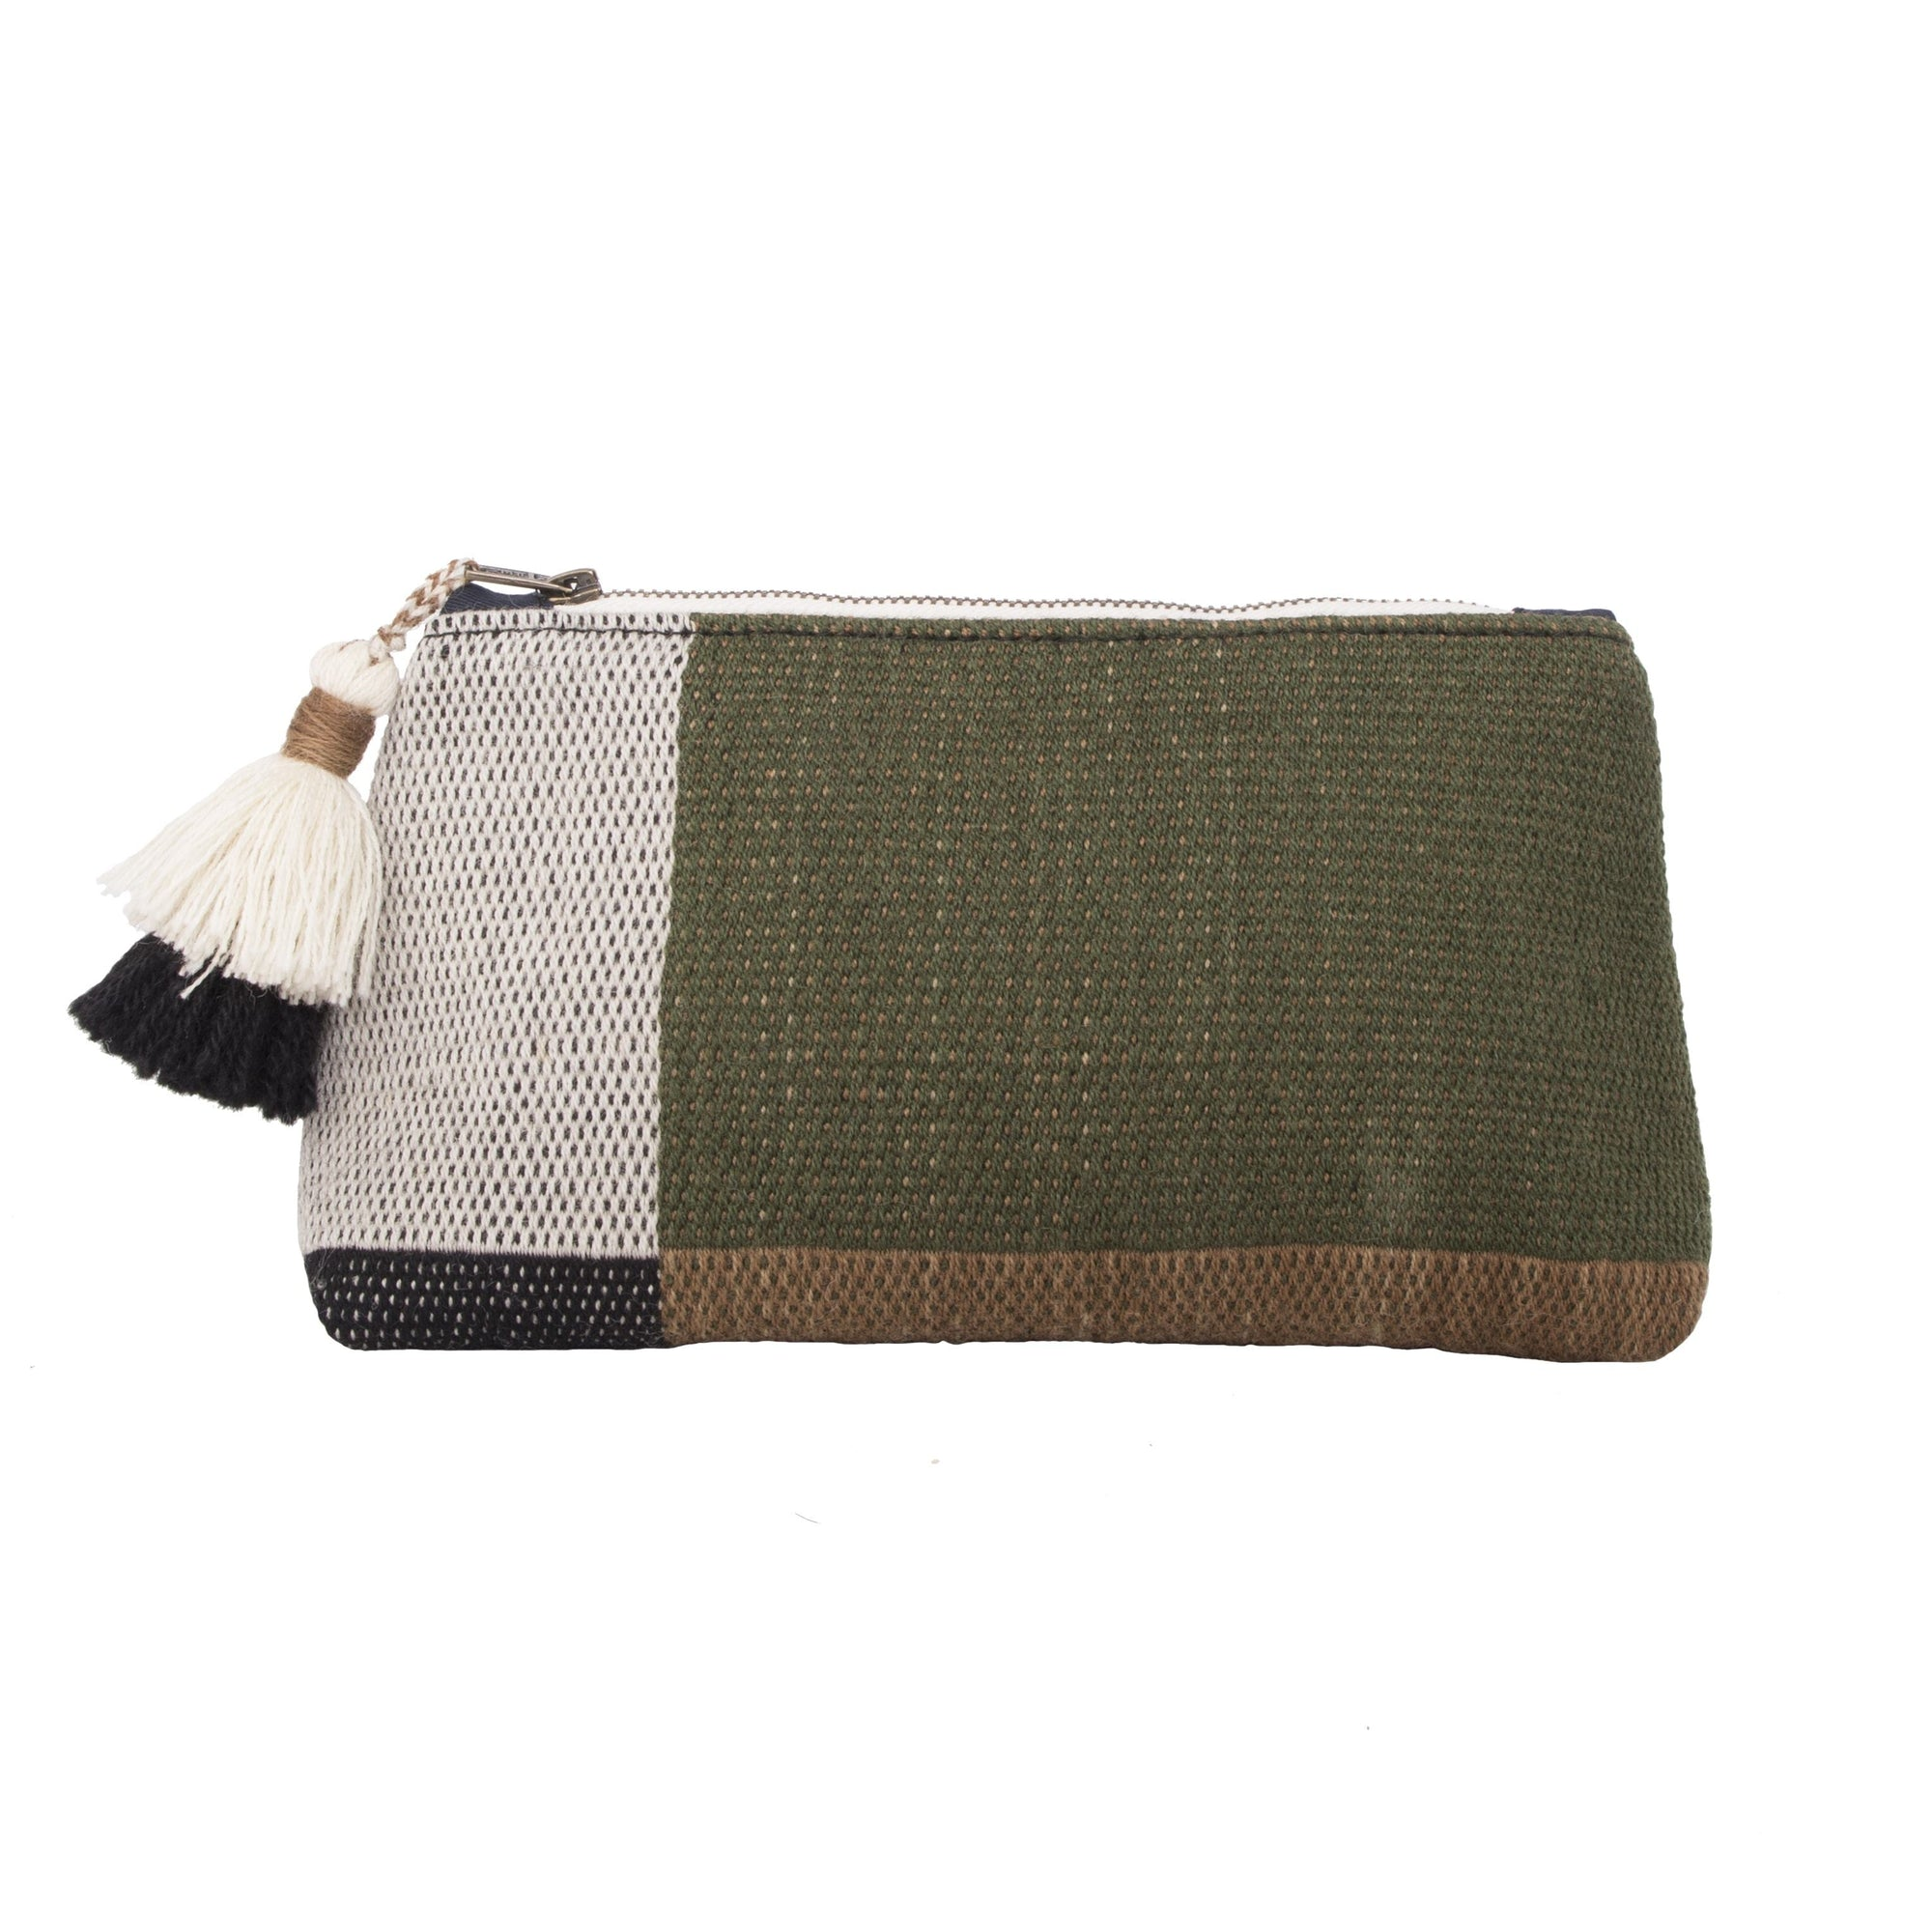 Awamaki - Inti Small Cosmetic Bag